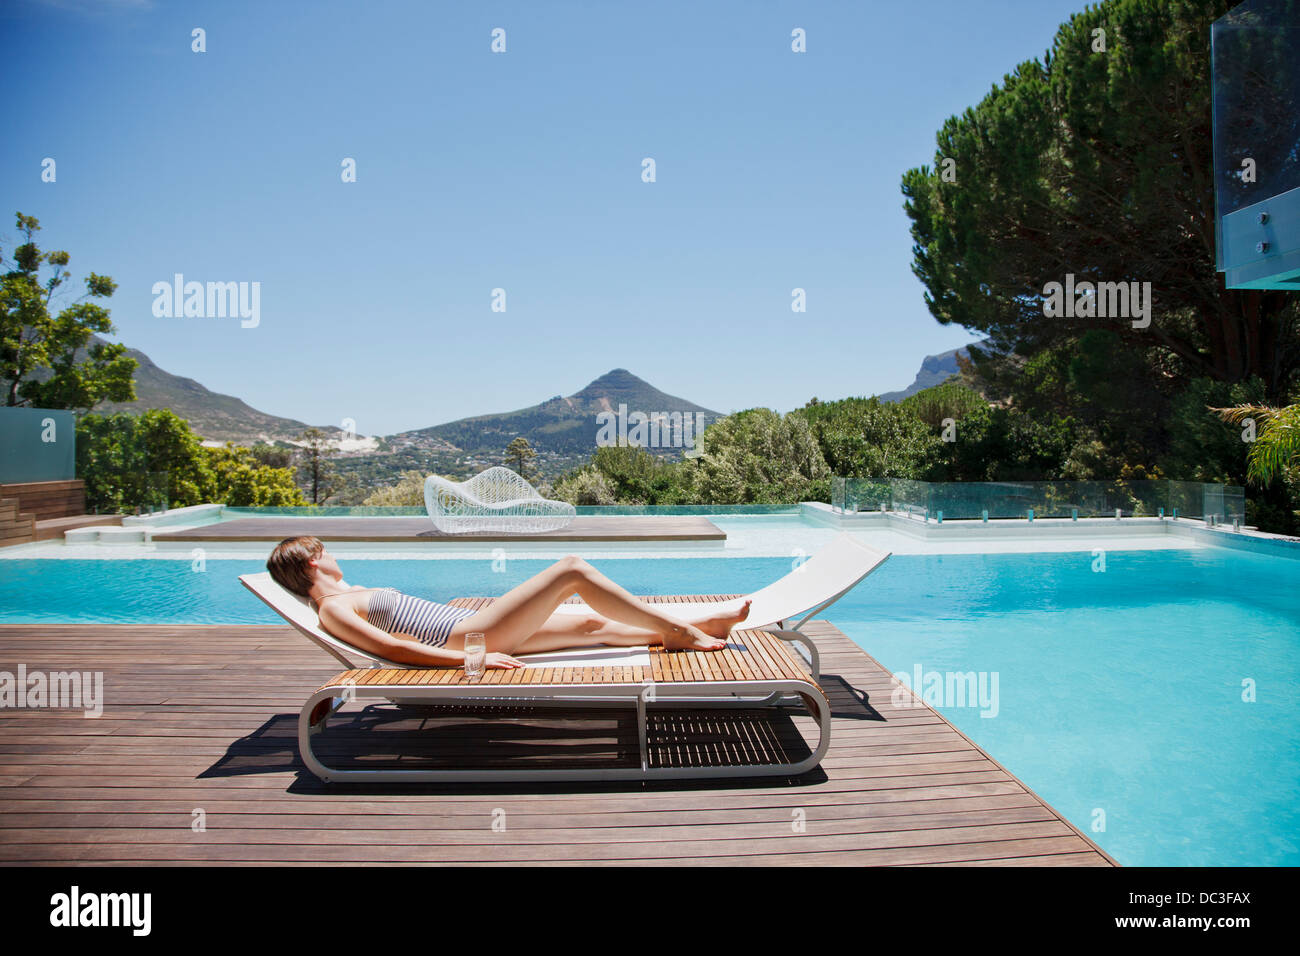 Woman Sunbathing On Lounge Chair Next To Luxury Swimming Pool With Mountain  View   Stock Image